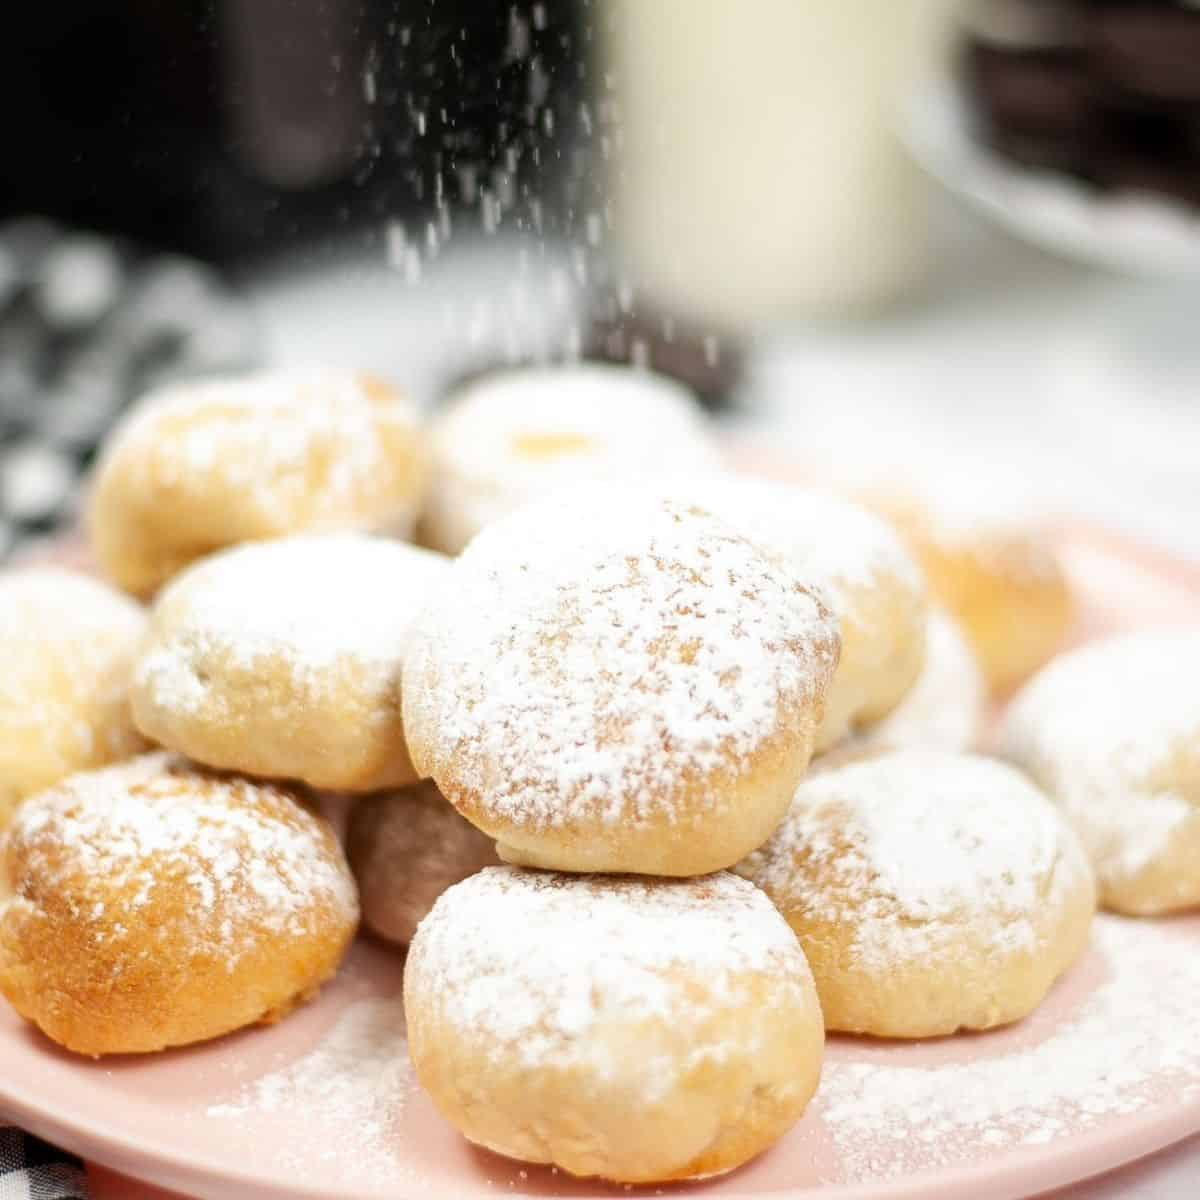 Oreos that have been wrapped in biscuit dough and air fried being dusted with powdered sugar.